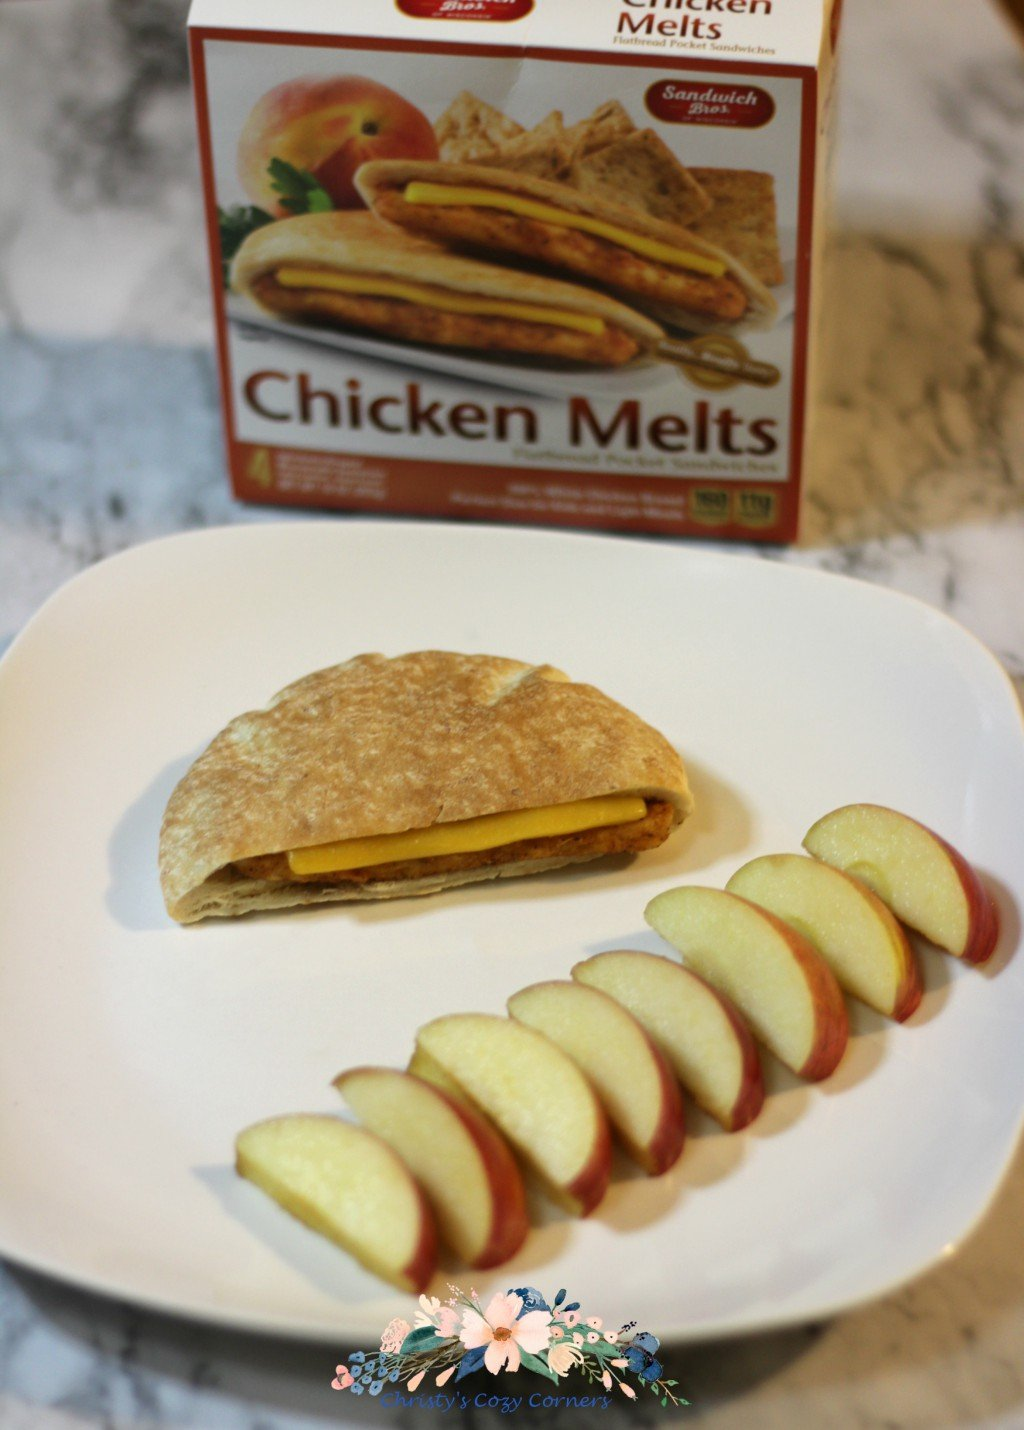 Plan a Healthy After-School Snack with Chicken Melts from Sandwich Bros.